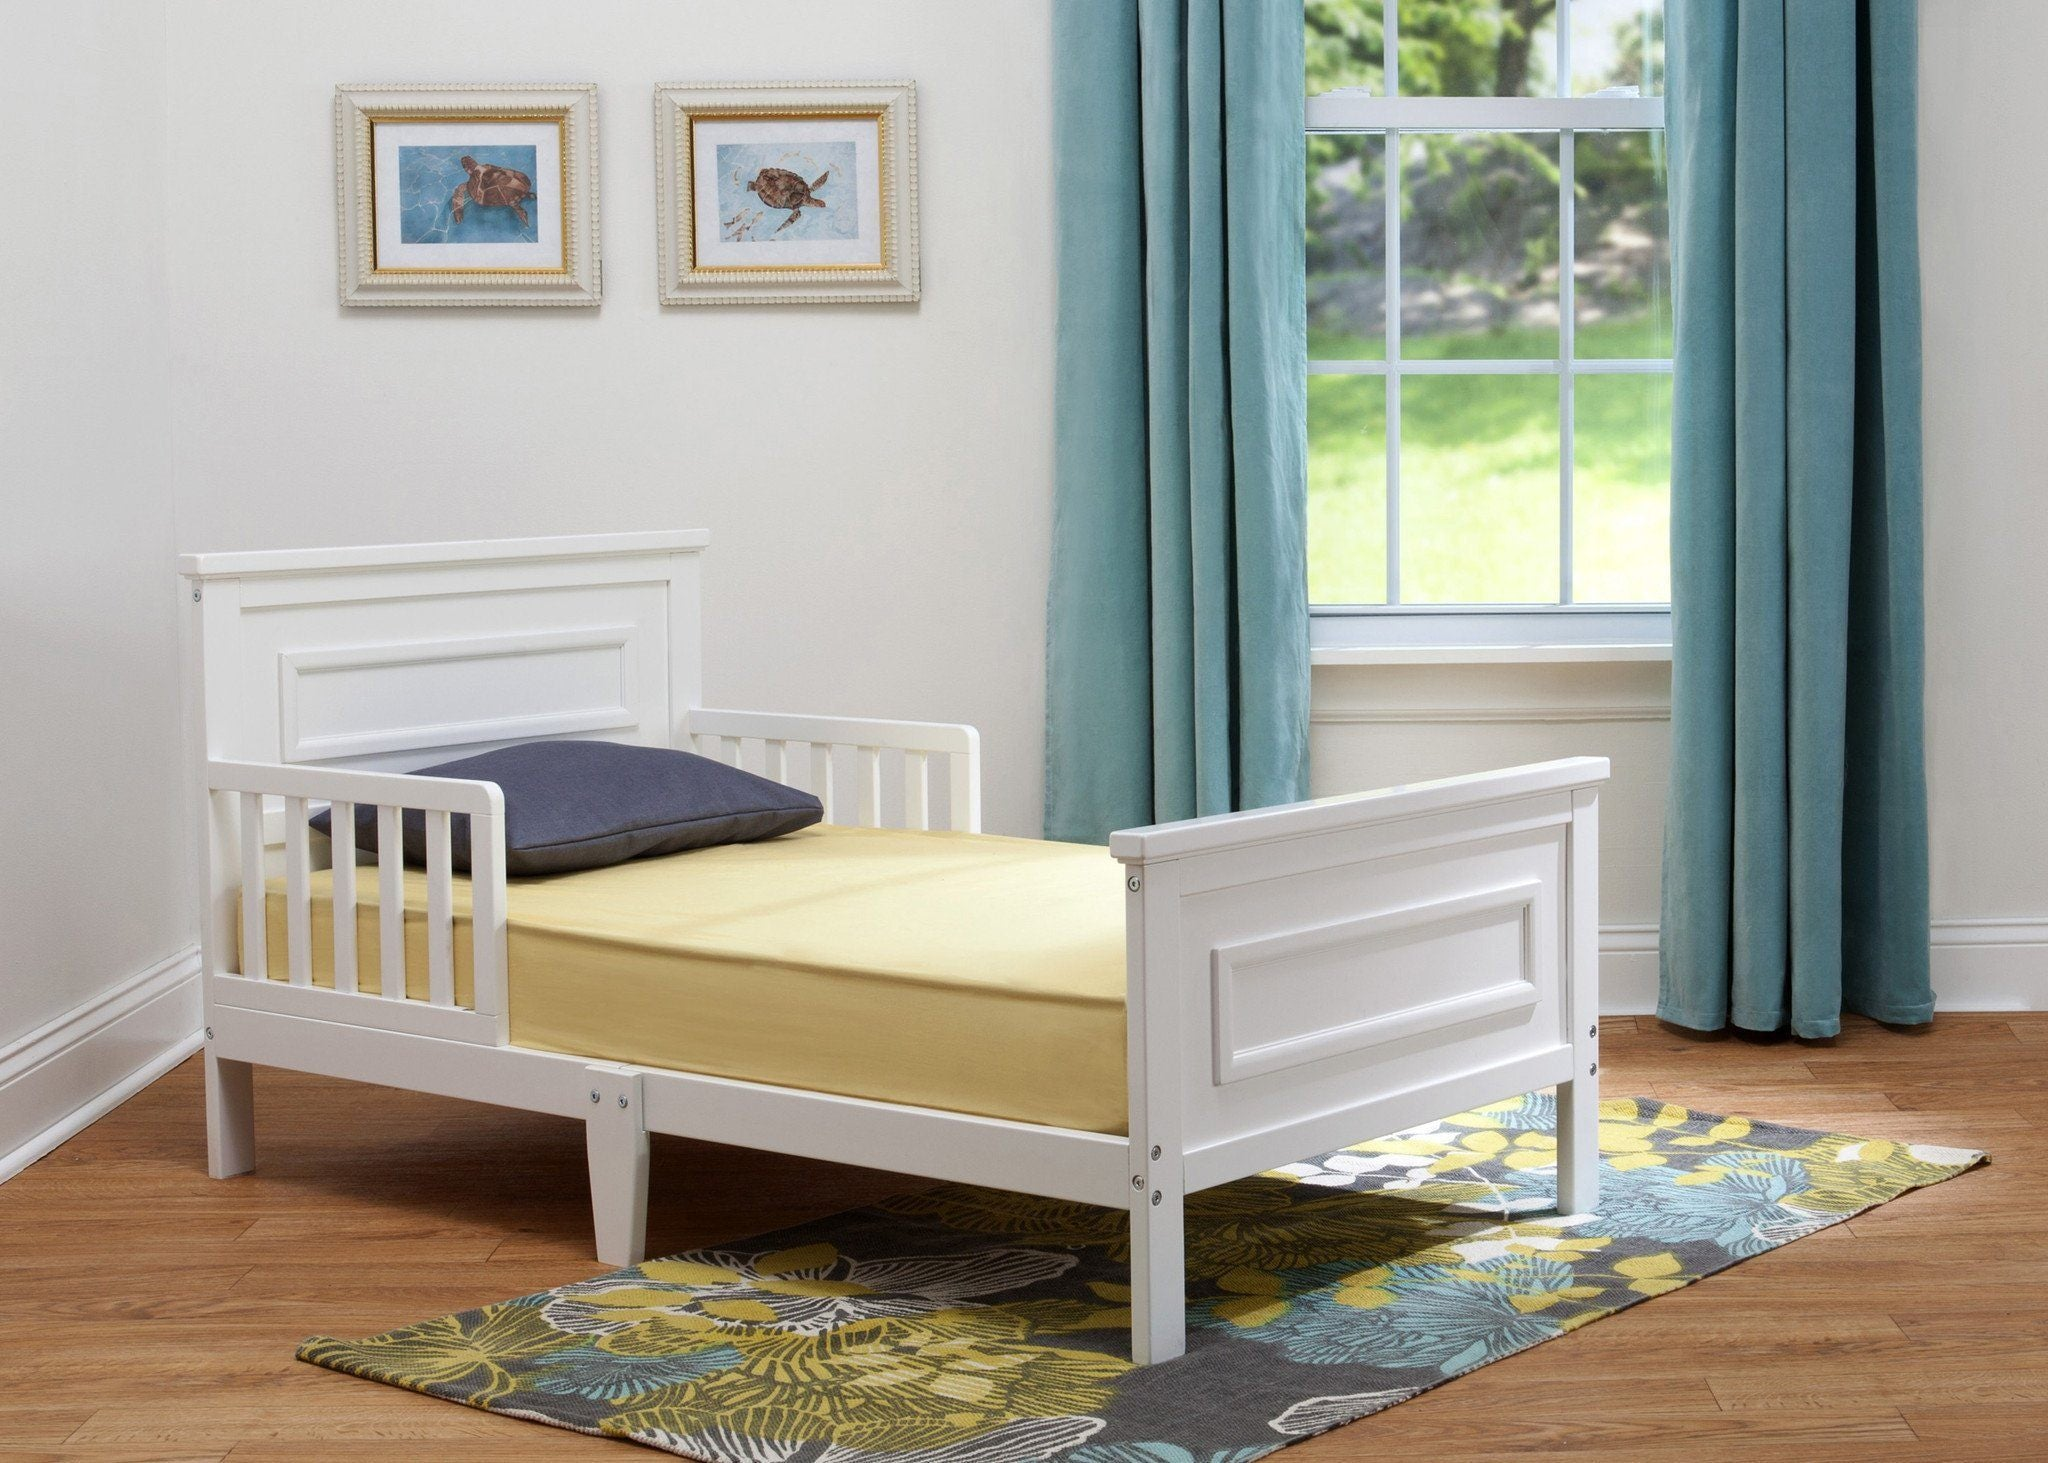 Delta Children White (100) Classic Toddler Bed in Setting b1b